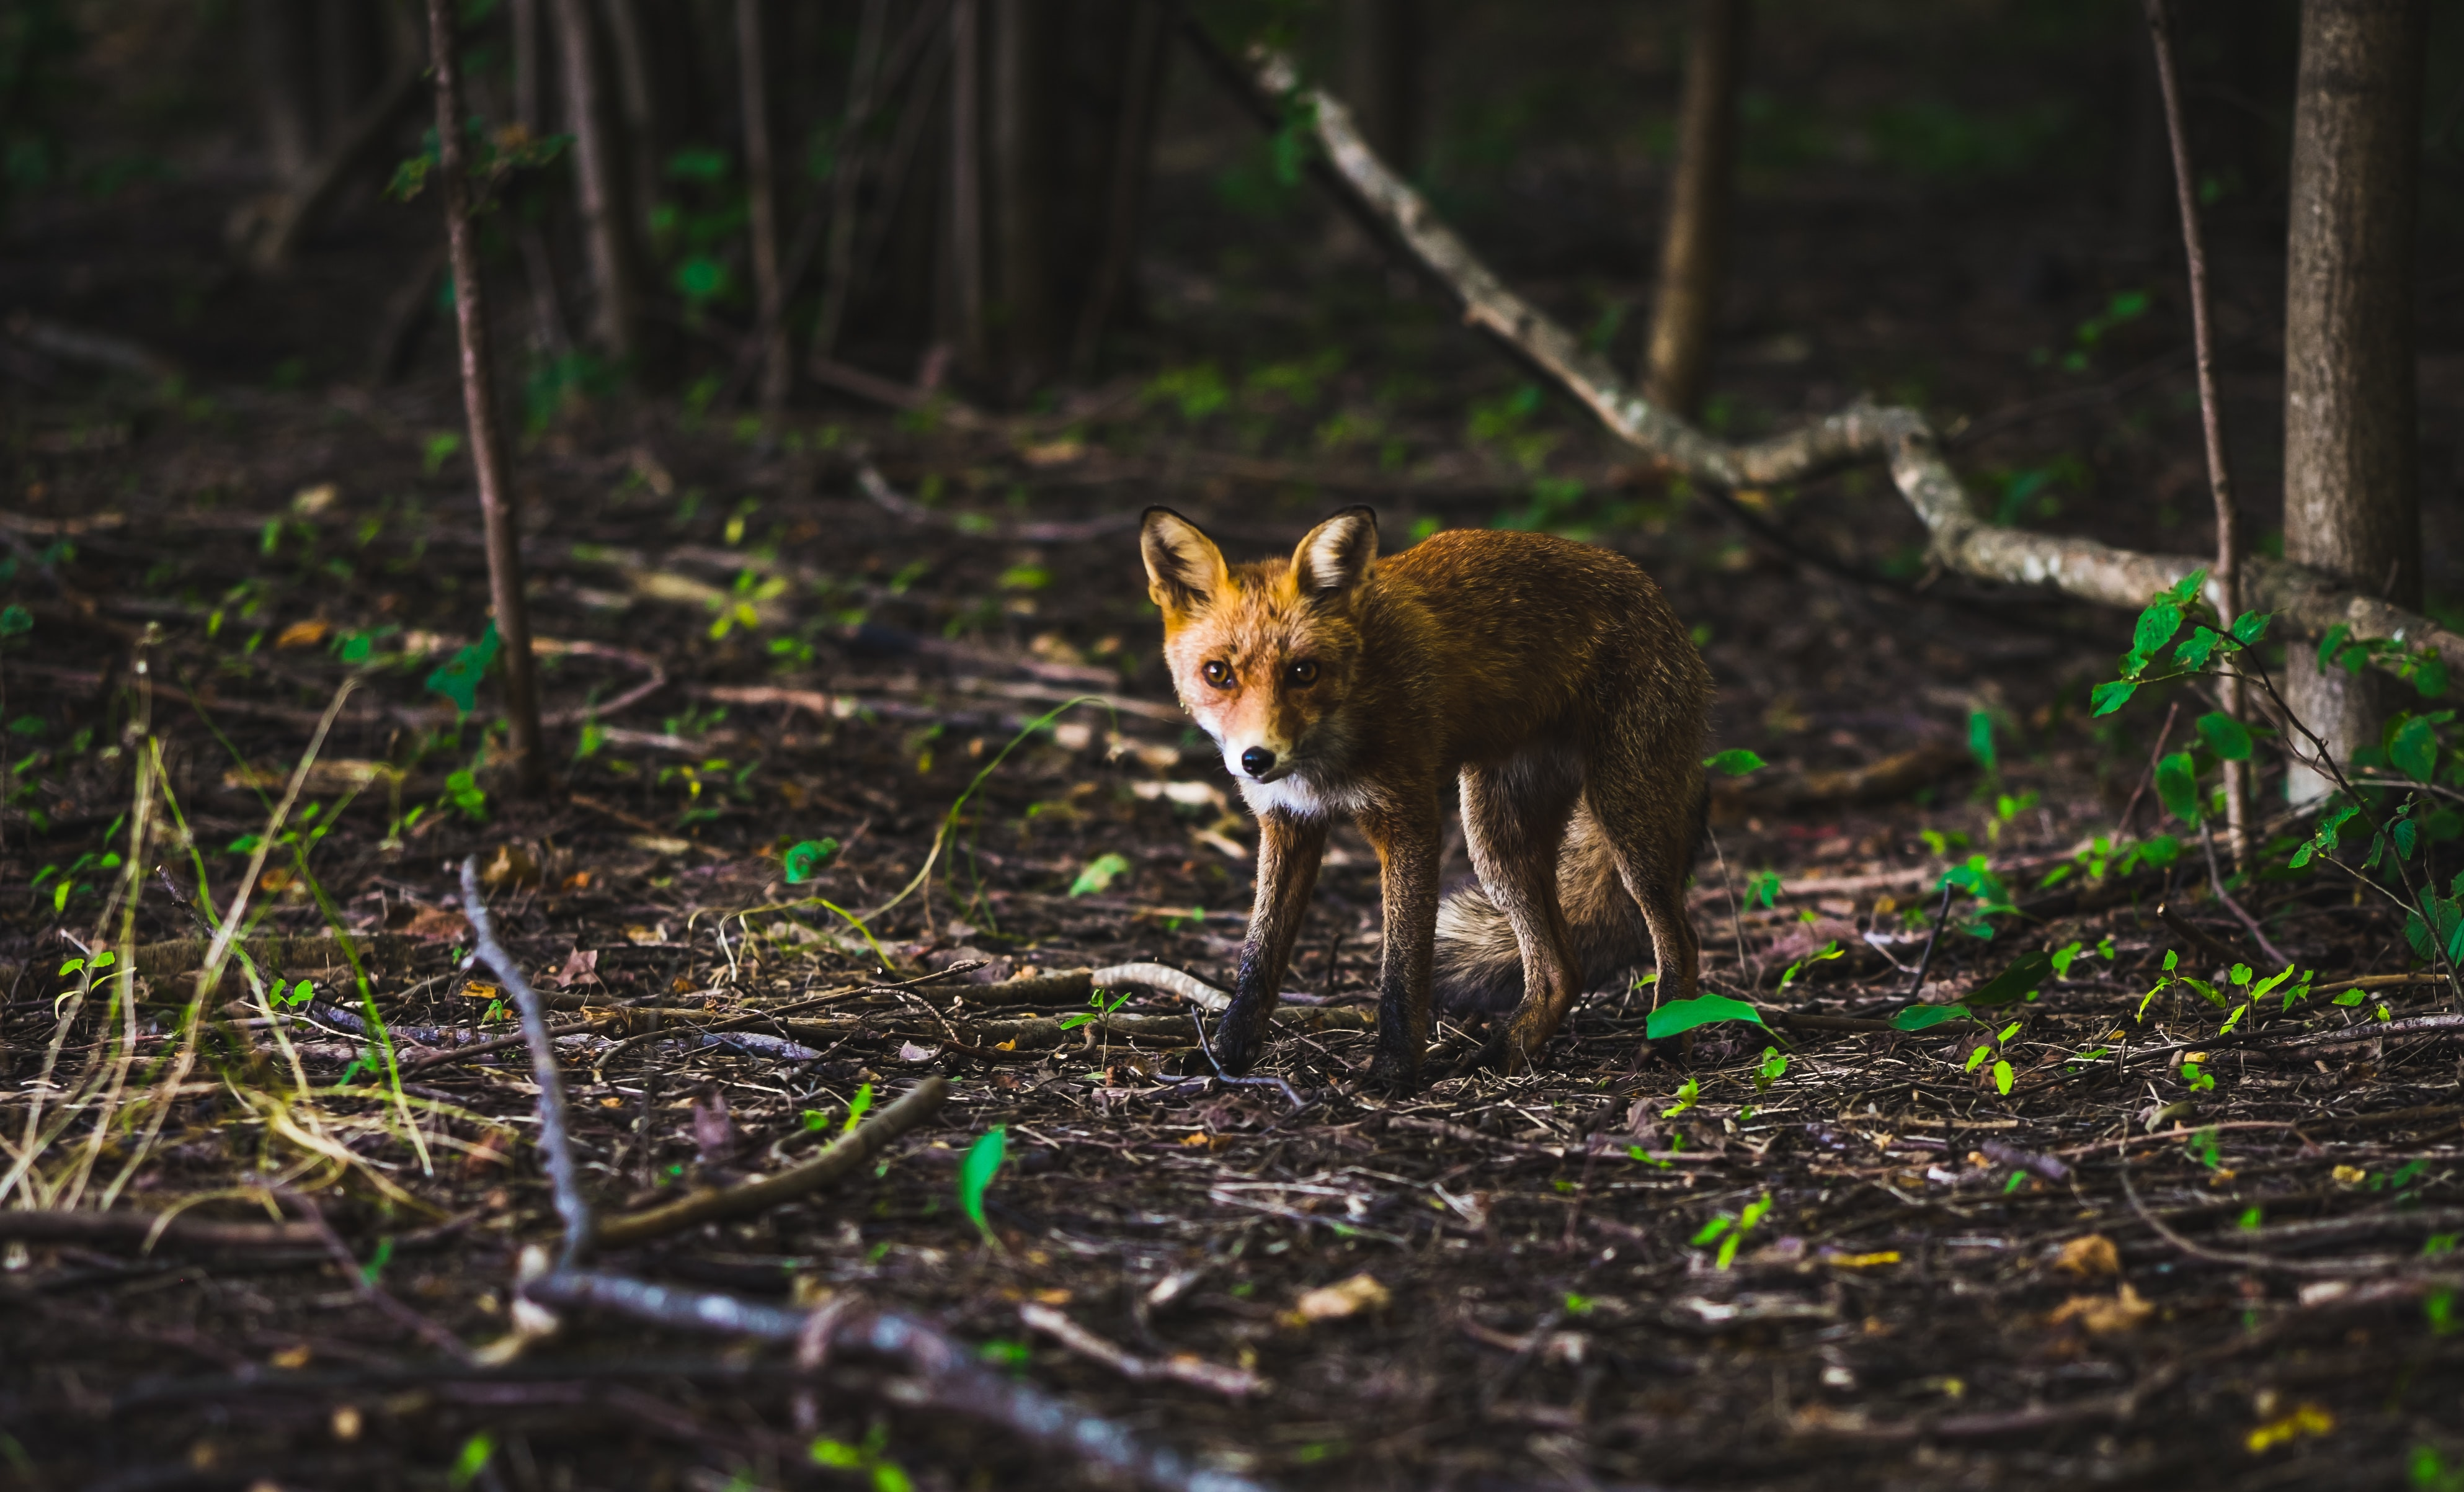 A cautious fox walking across the forest floor on a spring's day